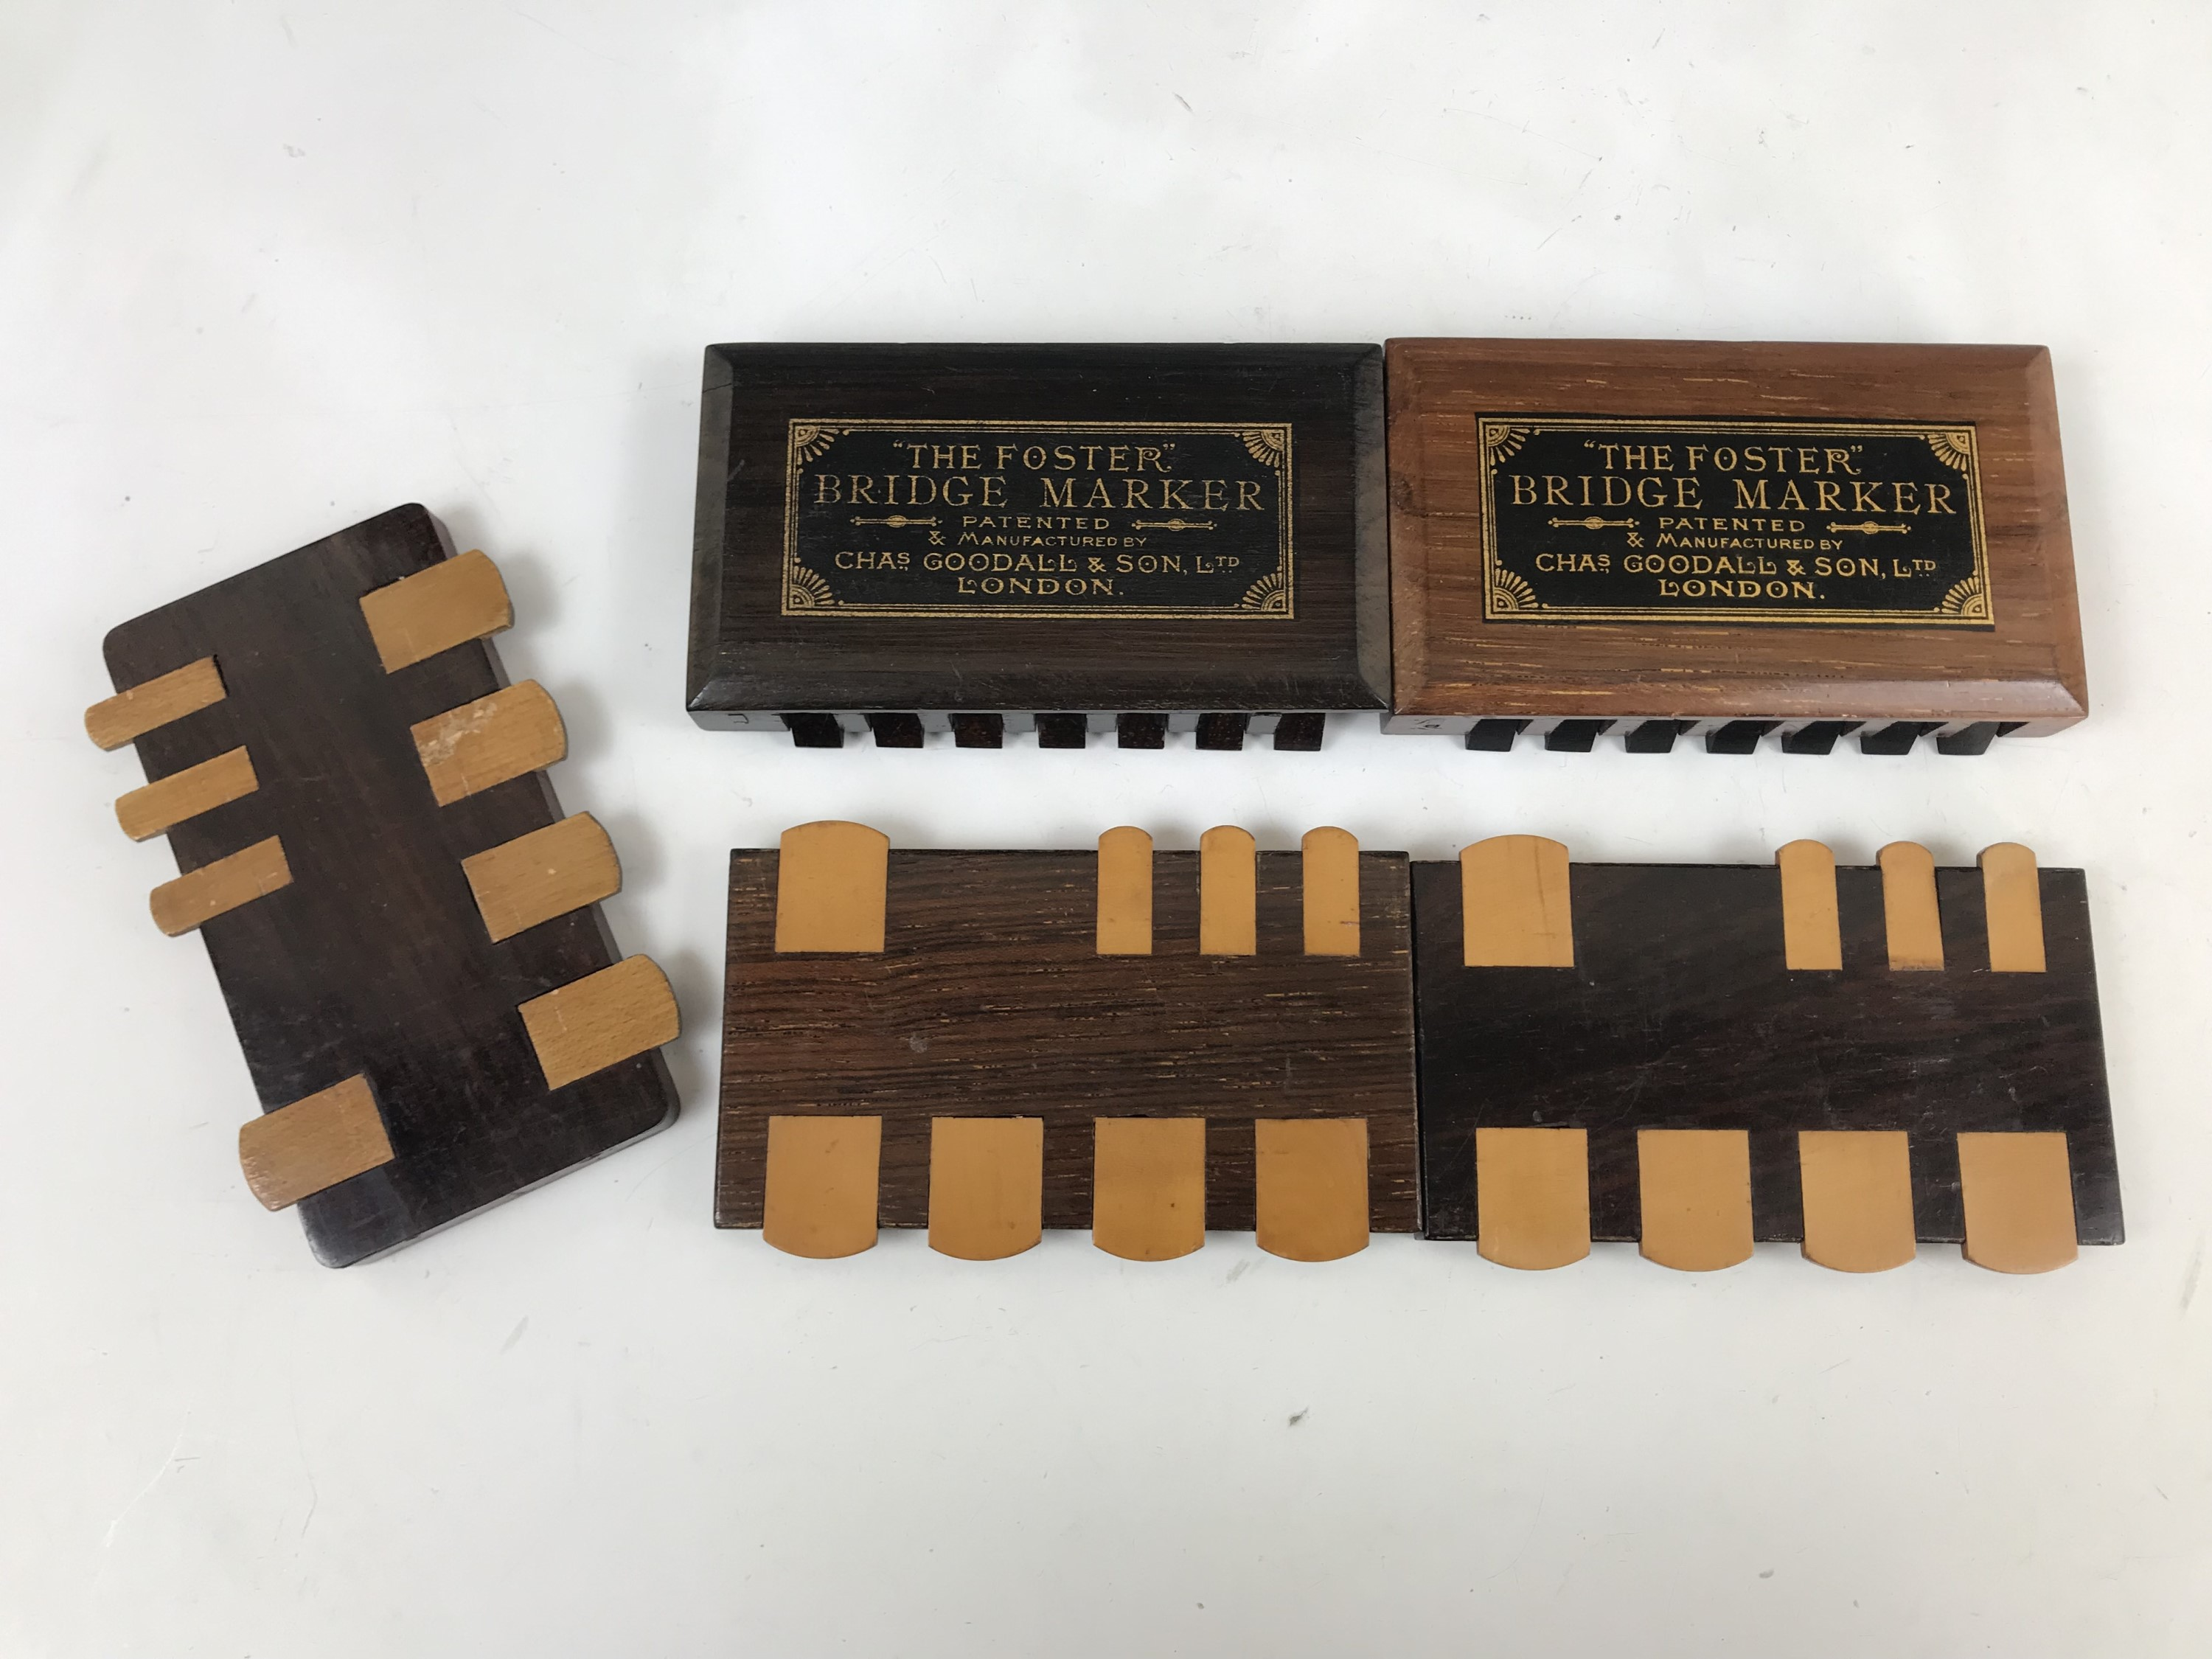 """Lot 29 - Late 19th Century wooden bridge and whist markers, including two patented """"Foster"""" bridge markers"""